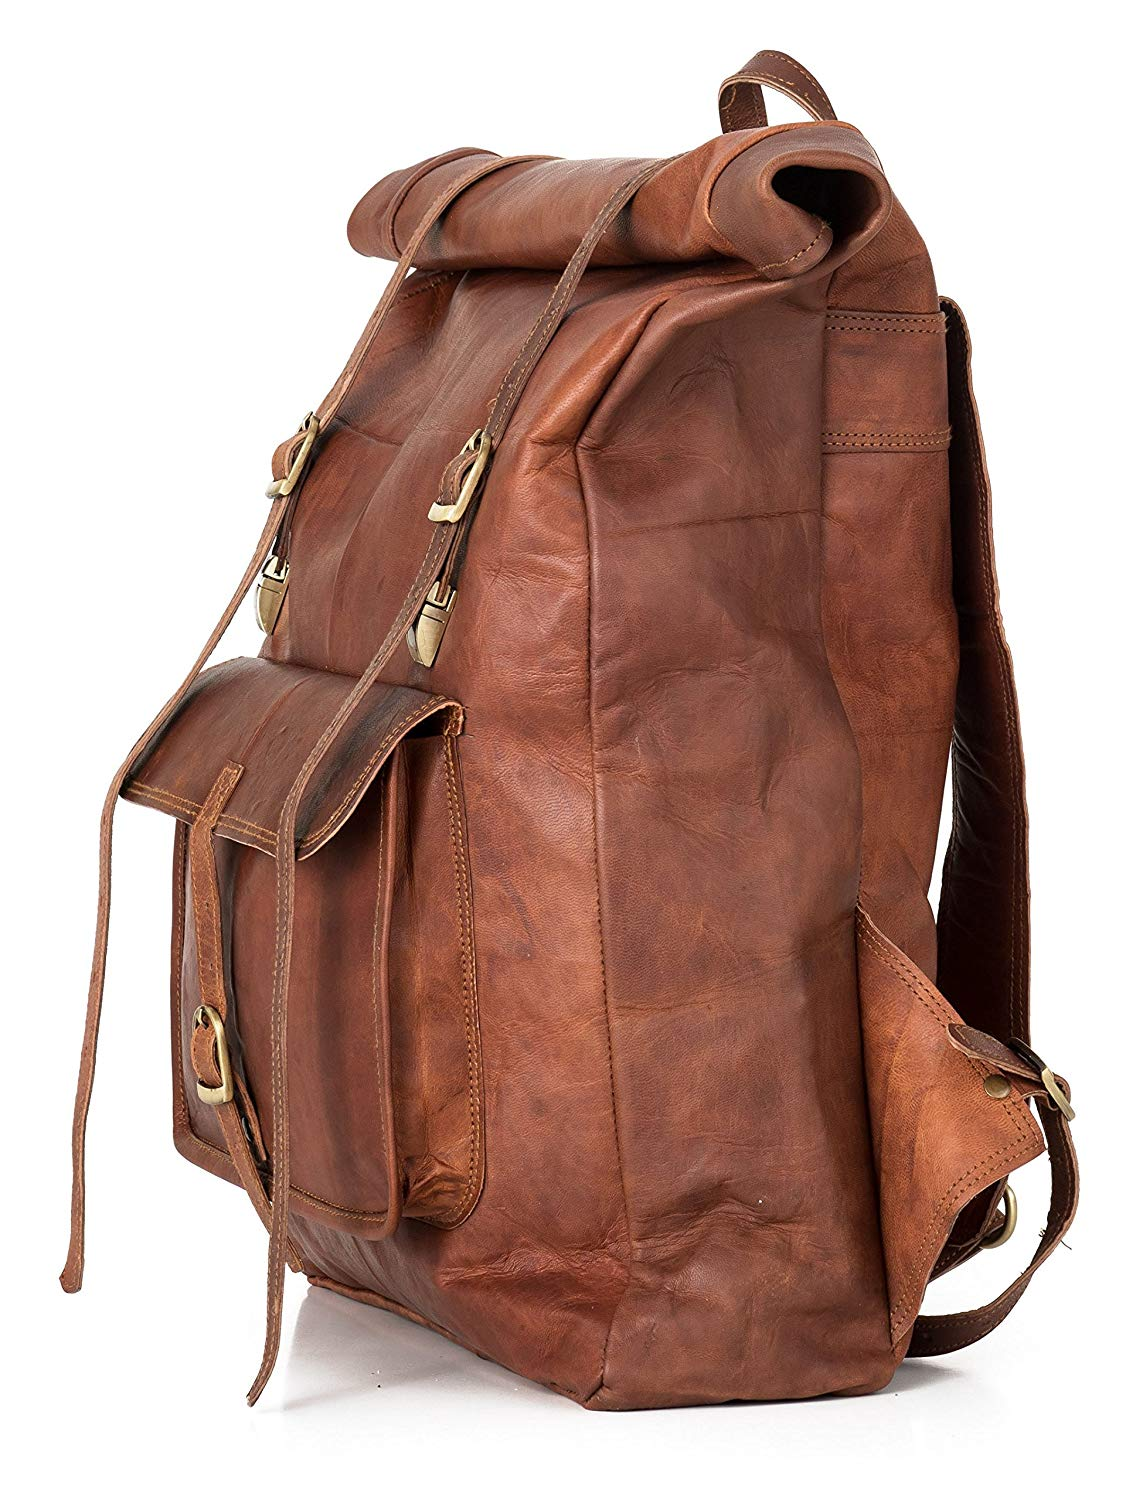 Each of our Vintage backpack is crafted with carefulness and care entirely by hand.